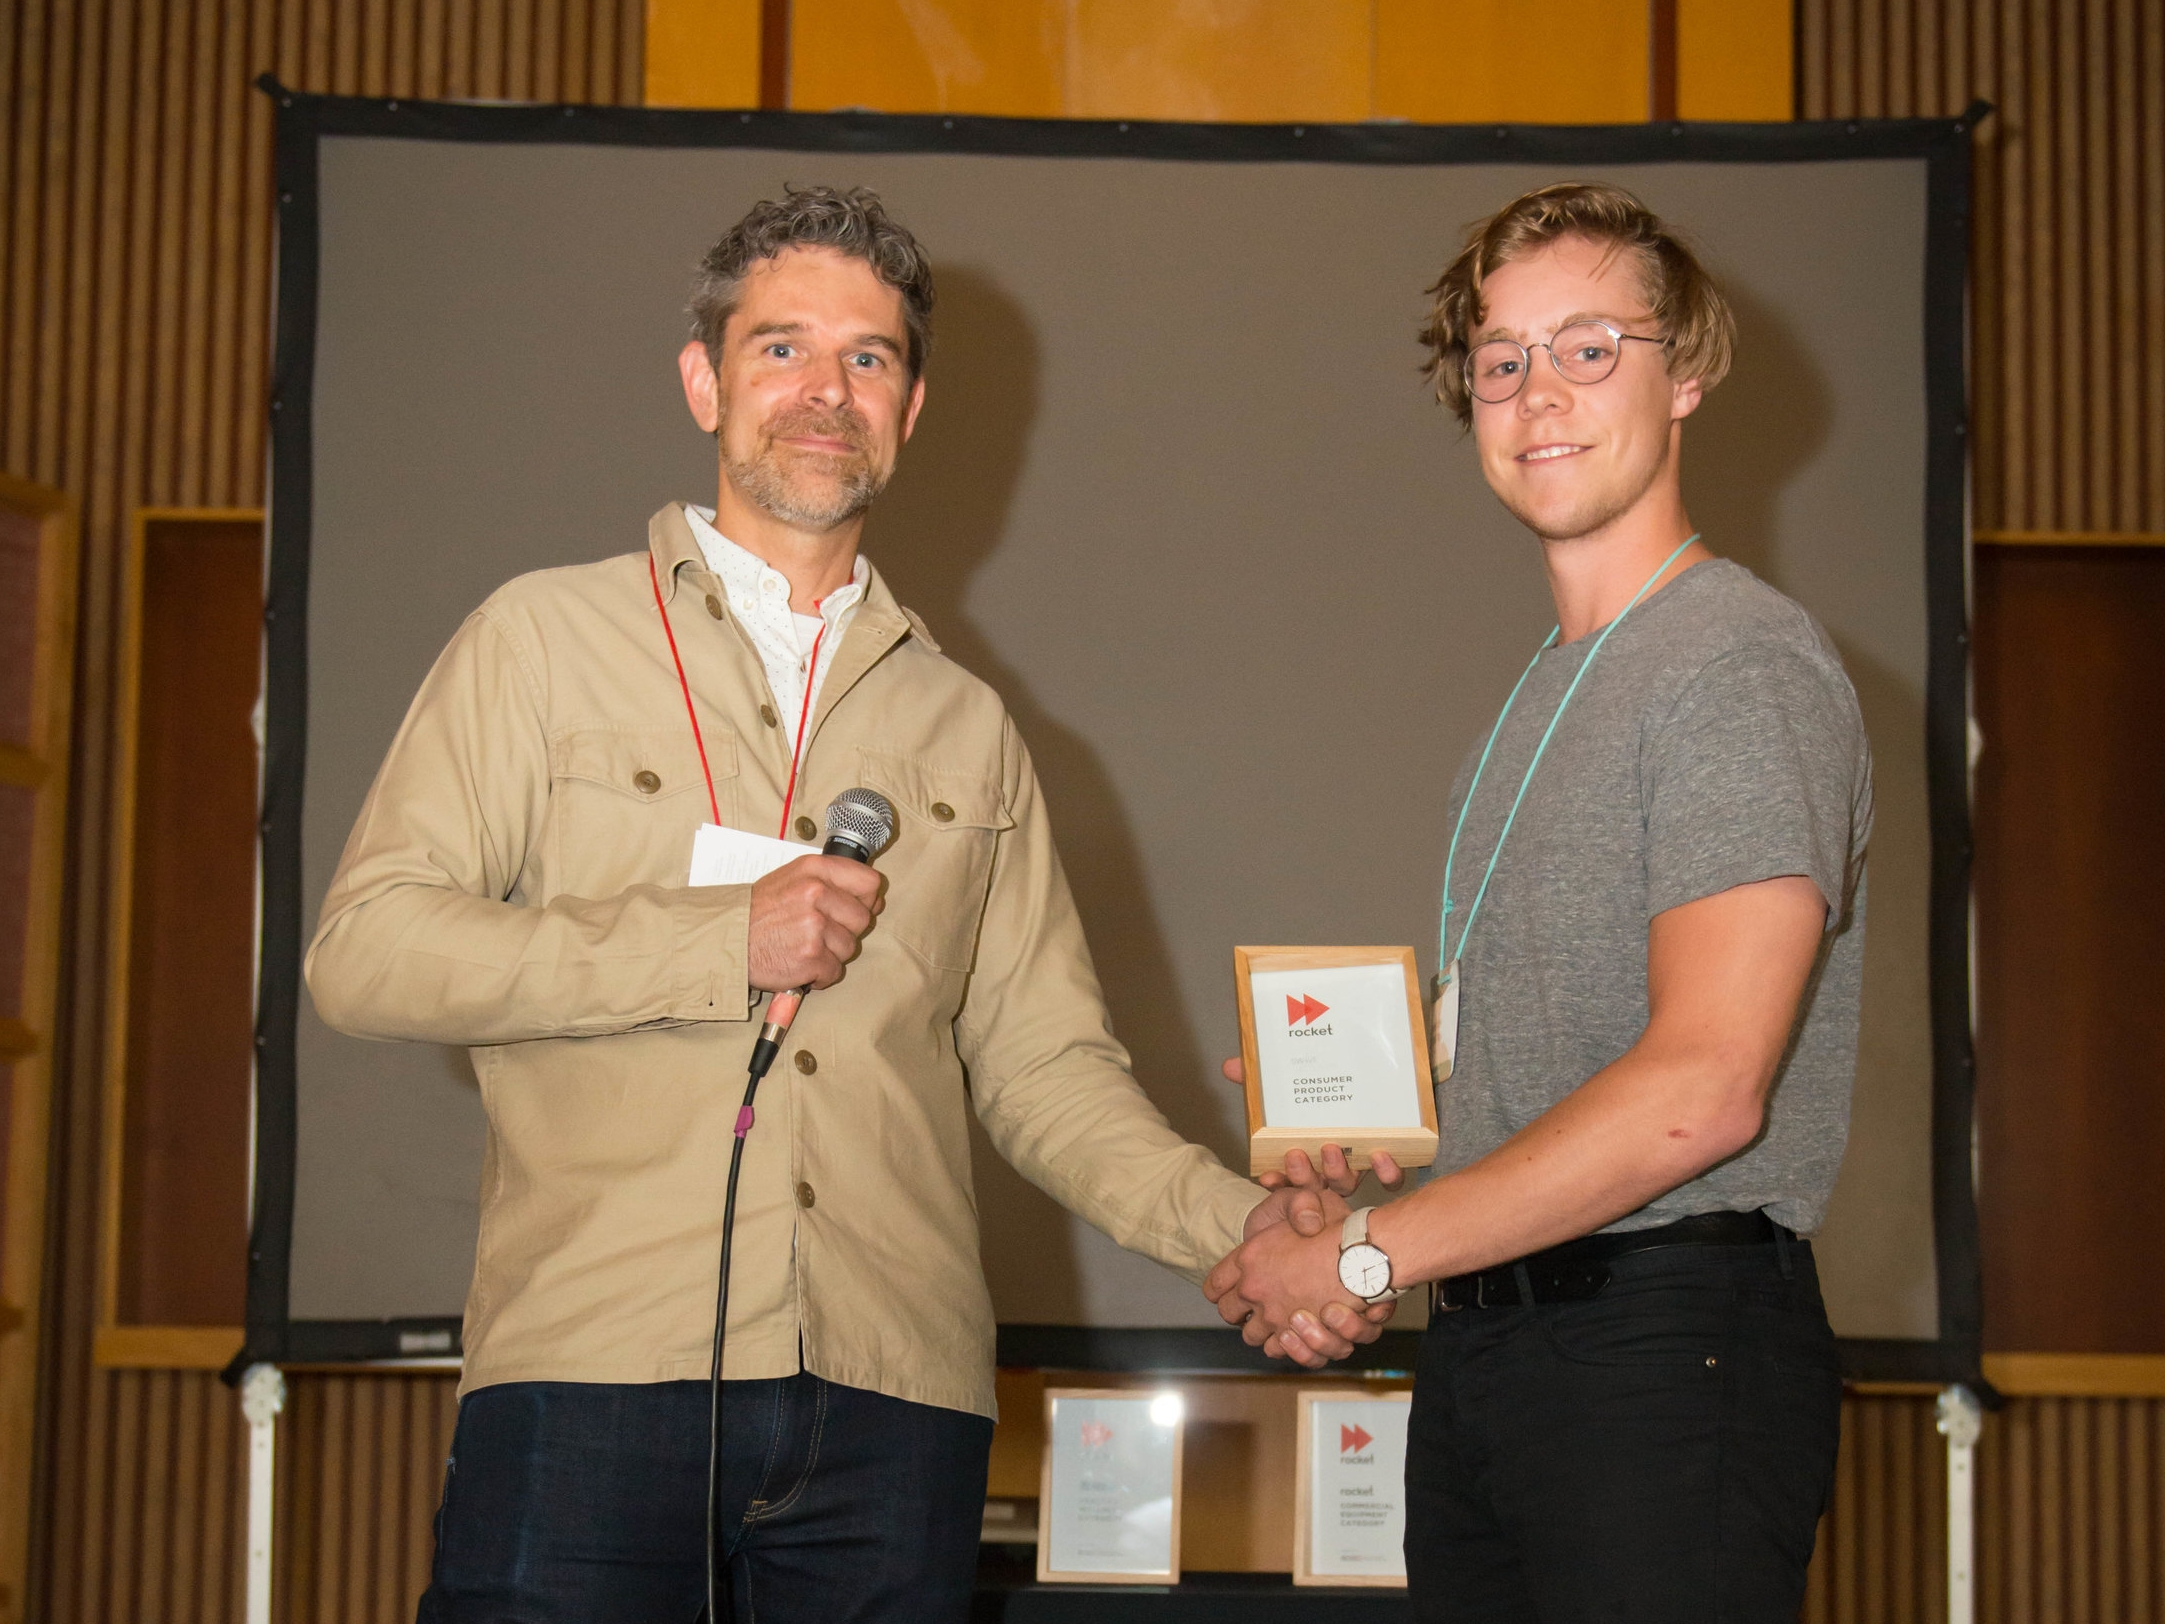 Cameron Veenstra accepting the accepting the Swave Studios Consumer Product Award from ACIDO President Jonathan Loudon.